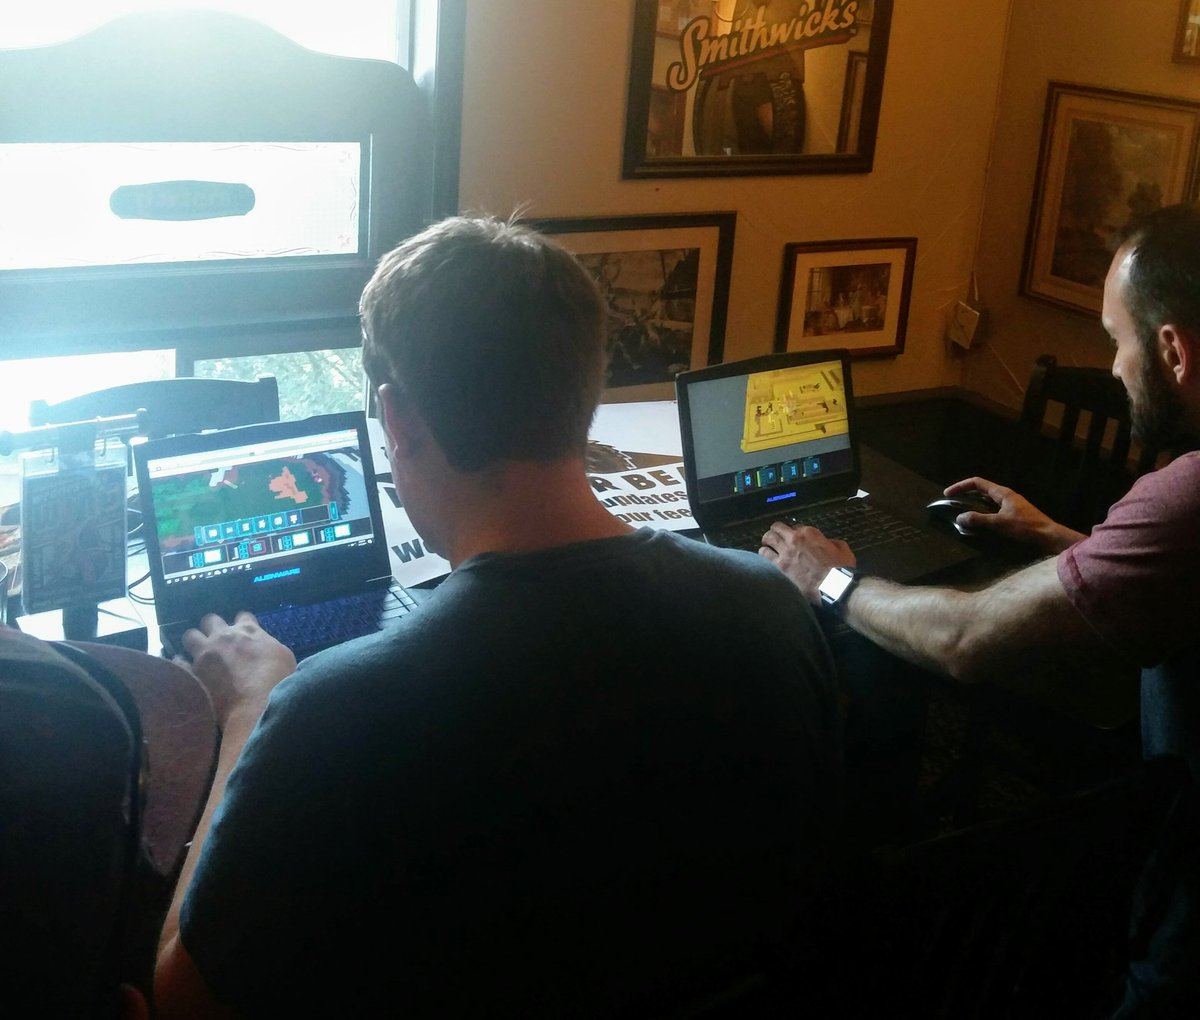 Doing a game demo with @calgarygamedevs. #yyc #indiegame #voxel #indiedev<br>http://pic.twitter.com/WLuzw5Mm2O